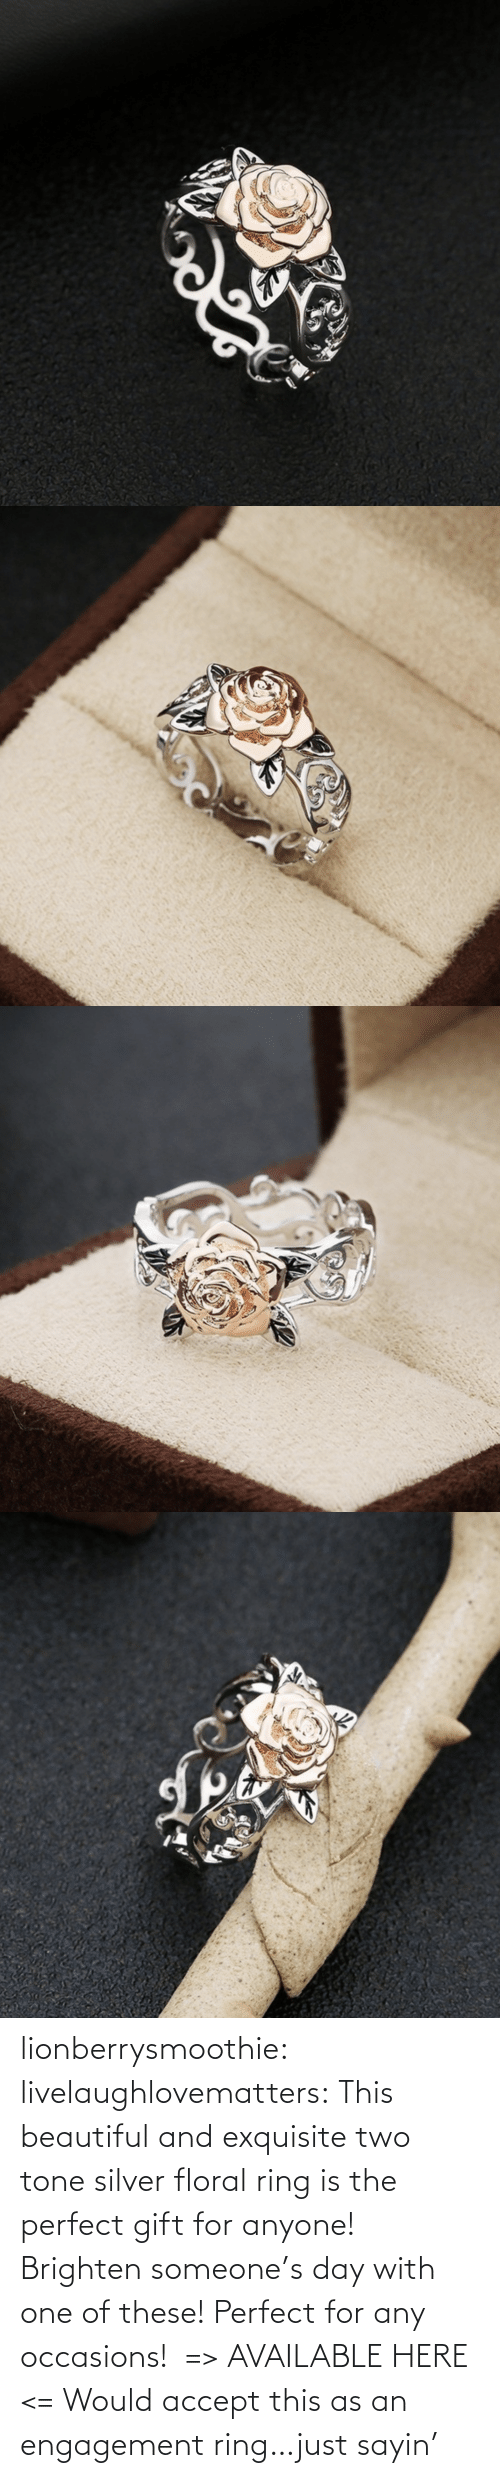 Beautiful, Gif, and Tumblr: lionberrysmoothie:  livelaughlovematters: This beautiful and exquisite two tone silver floral ring is the perfect gift for anyone! Brighten someone's day with one of these! Perfect for any occasions!  => AVAILABLE HERE <=    Would accept this as an engagement ring…just sayin'